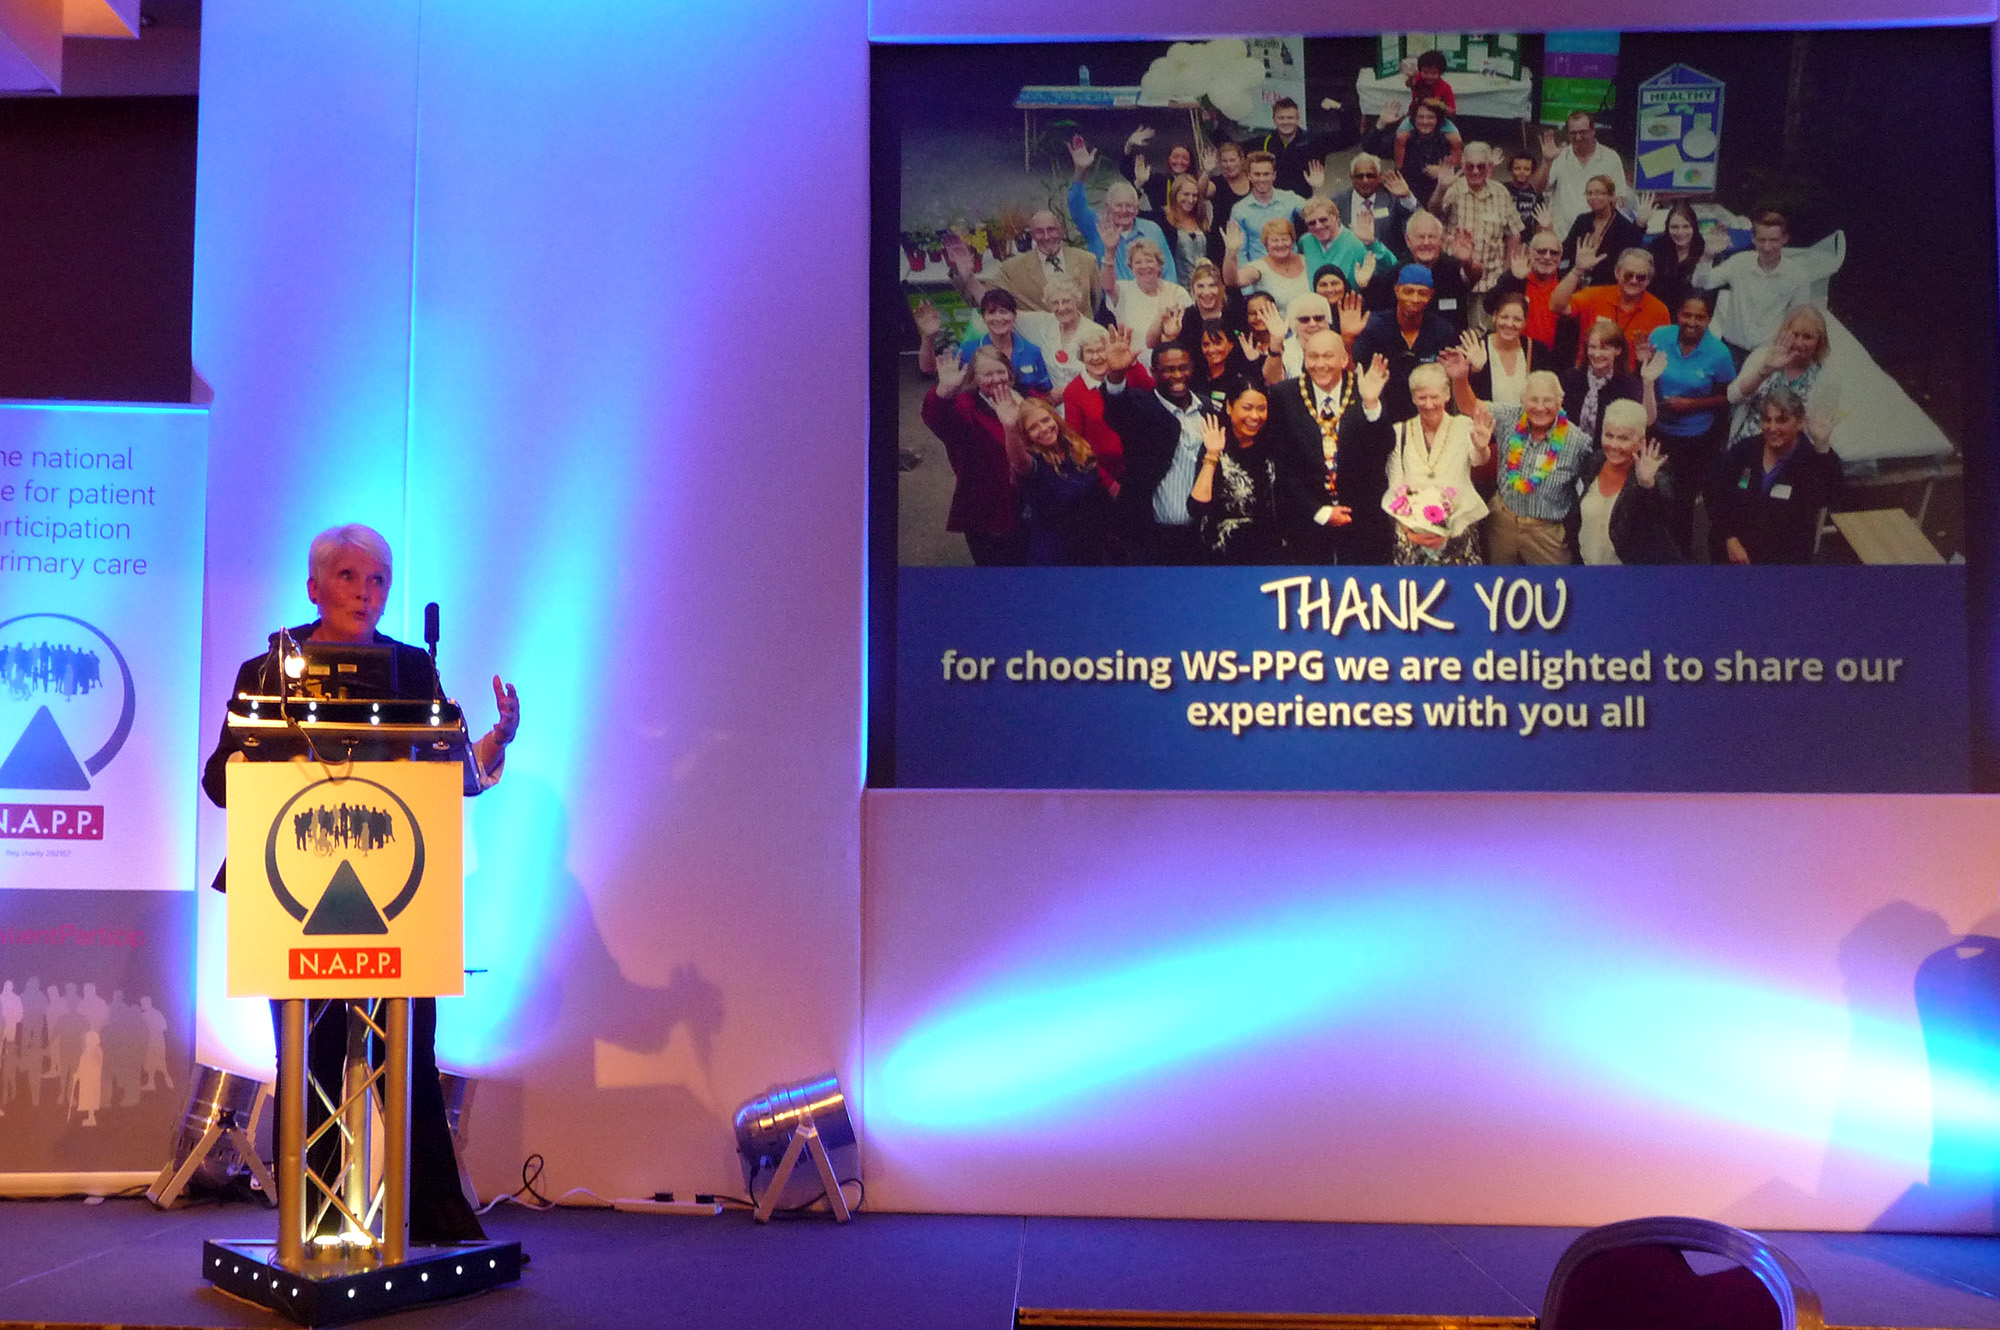 Di Kent speaks at conference